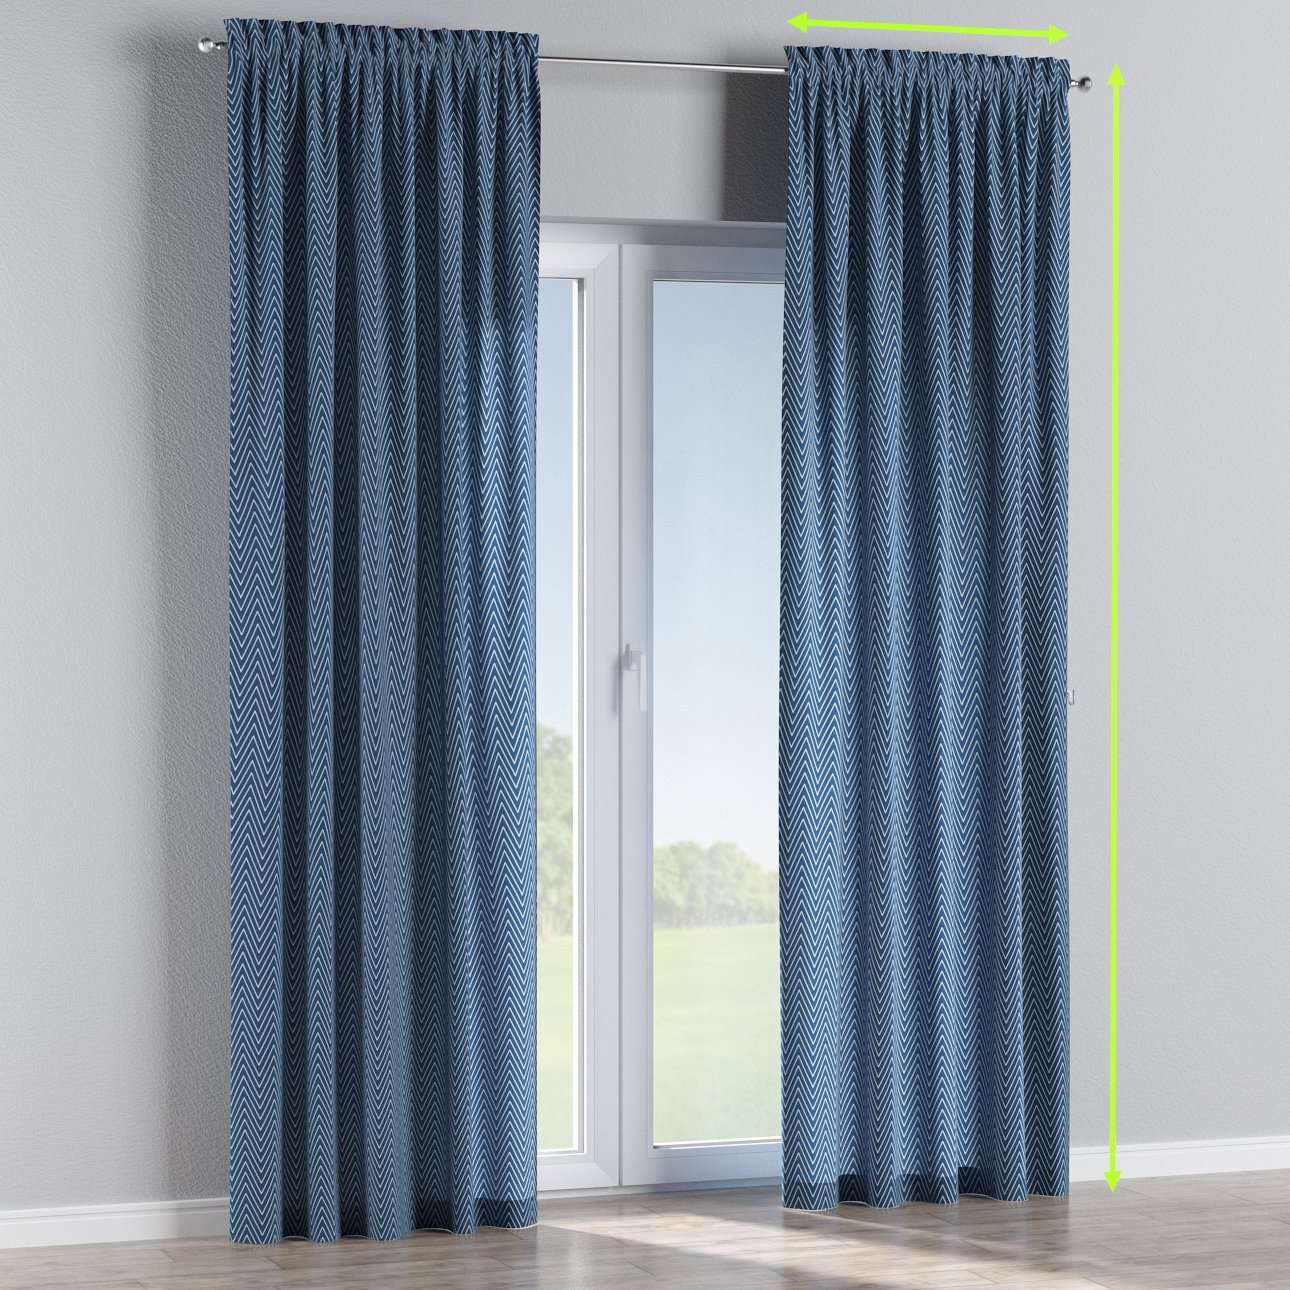 Slot and frill lined curtains in collection Brooklyn, fabric: 137-88